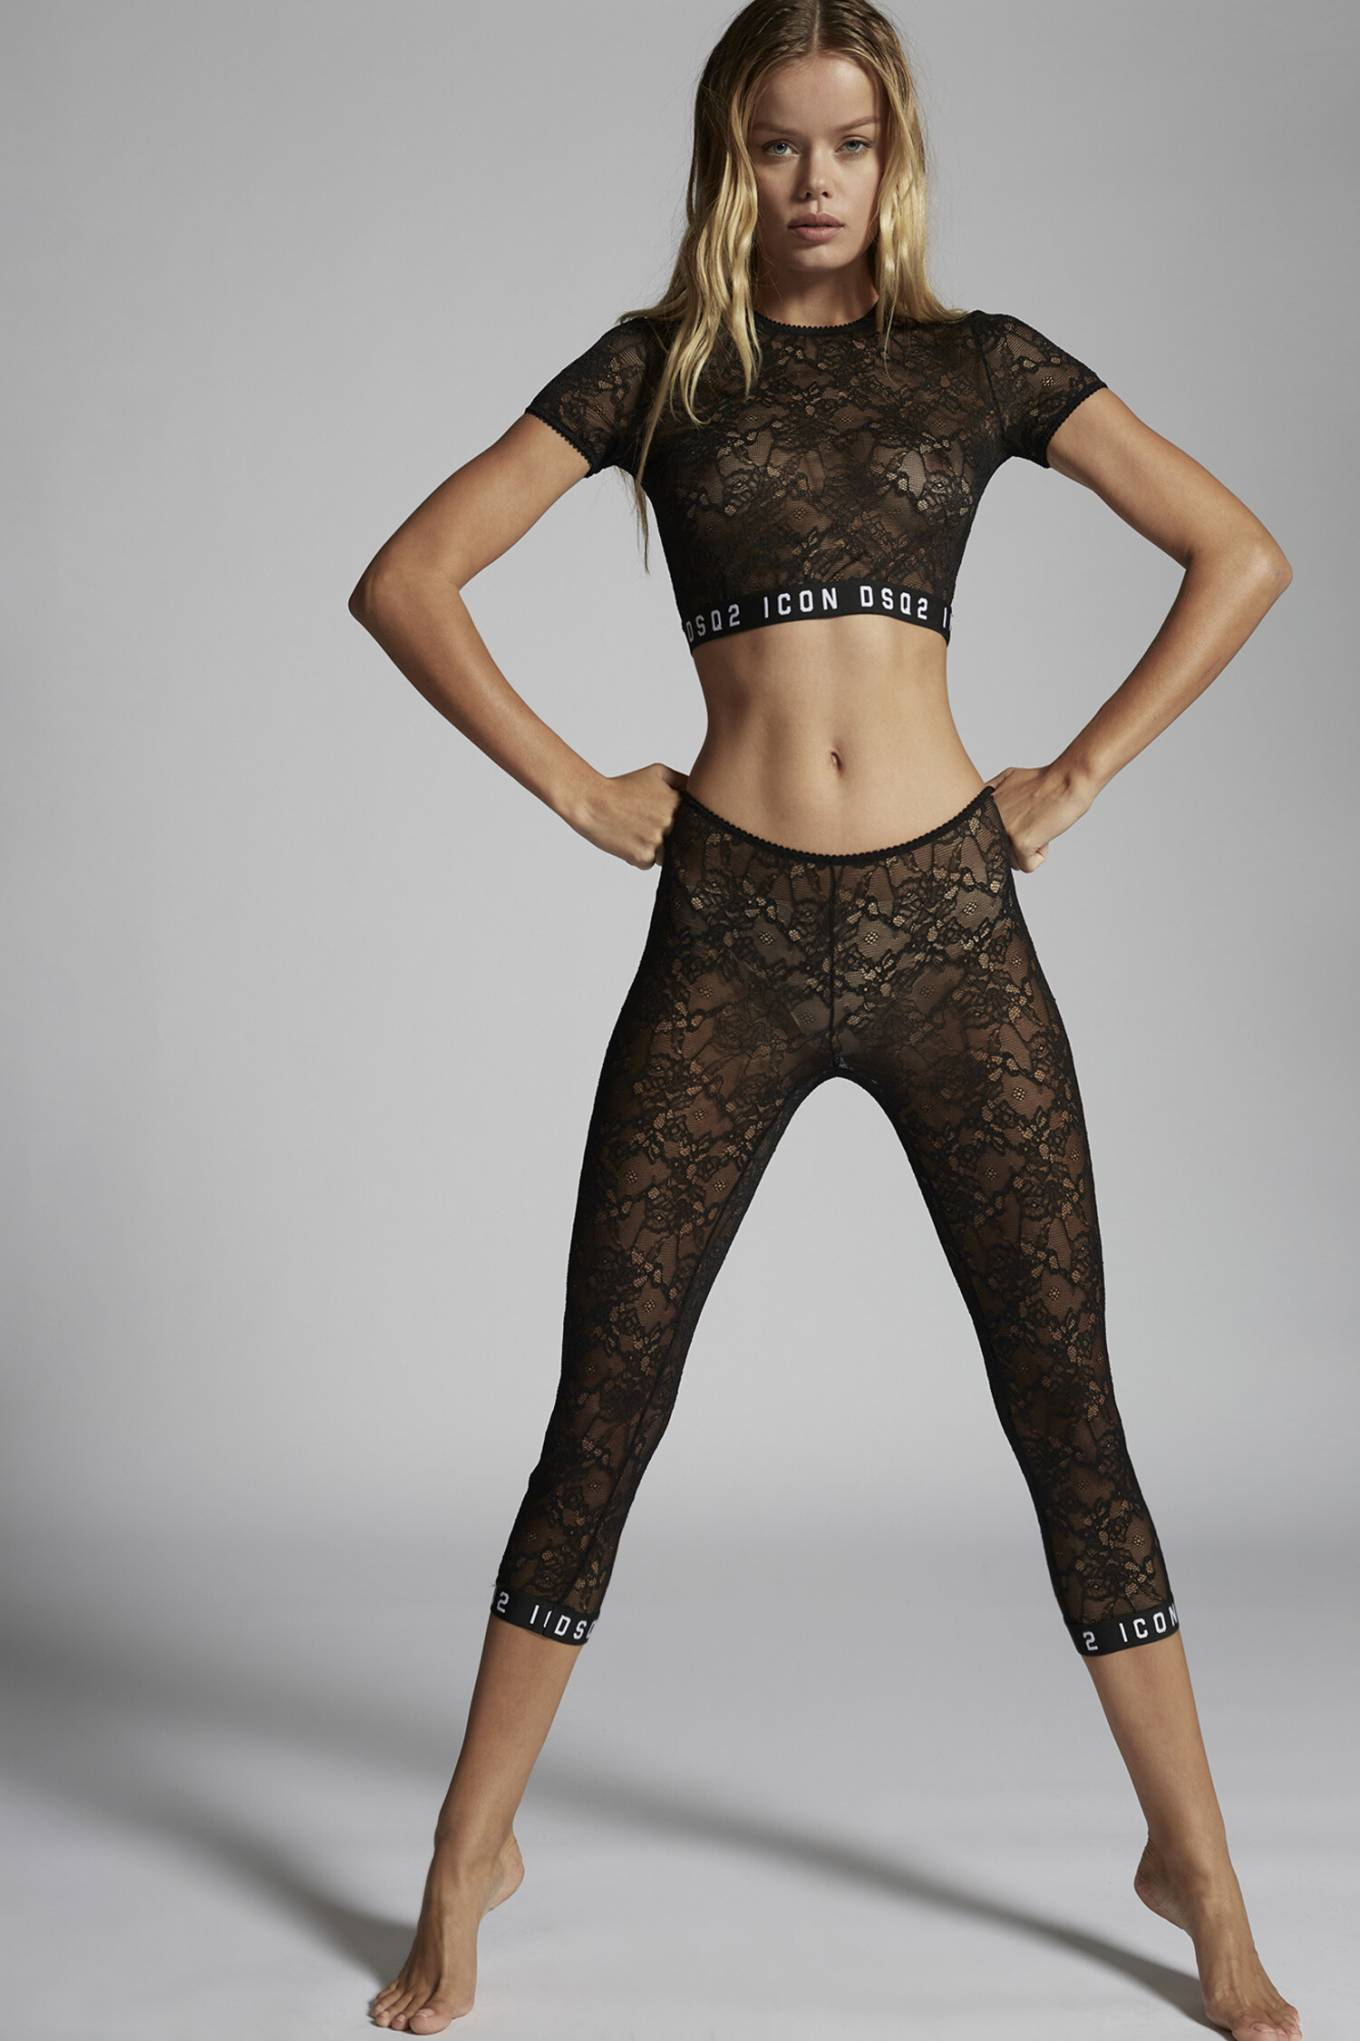 Frida Aasen wearing sheer black lace embroidered skinny leggings with brand logo